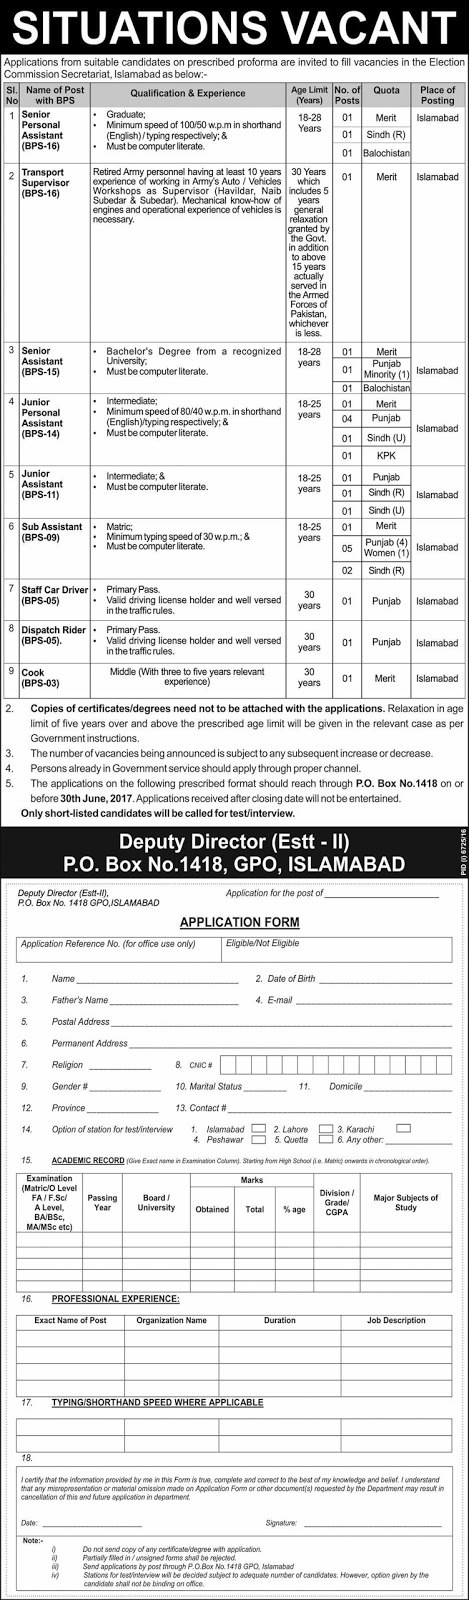 Latest Government Jobs in Election Commission of Pakistan for various vacant posts